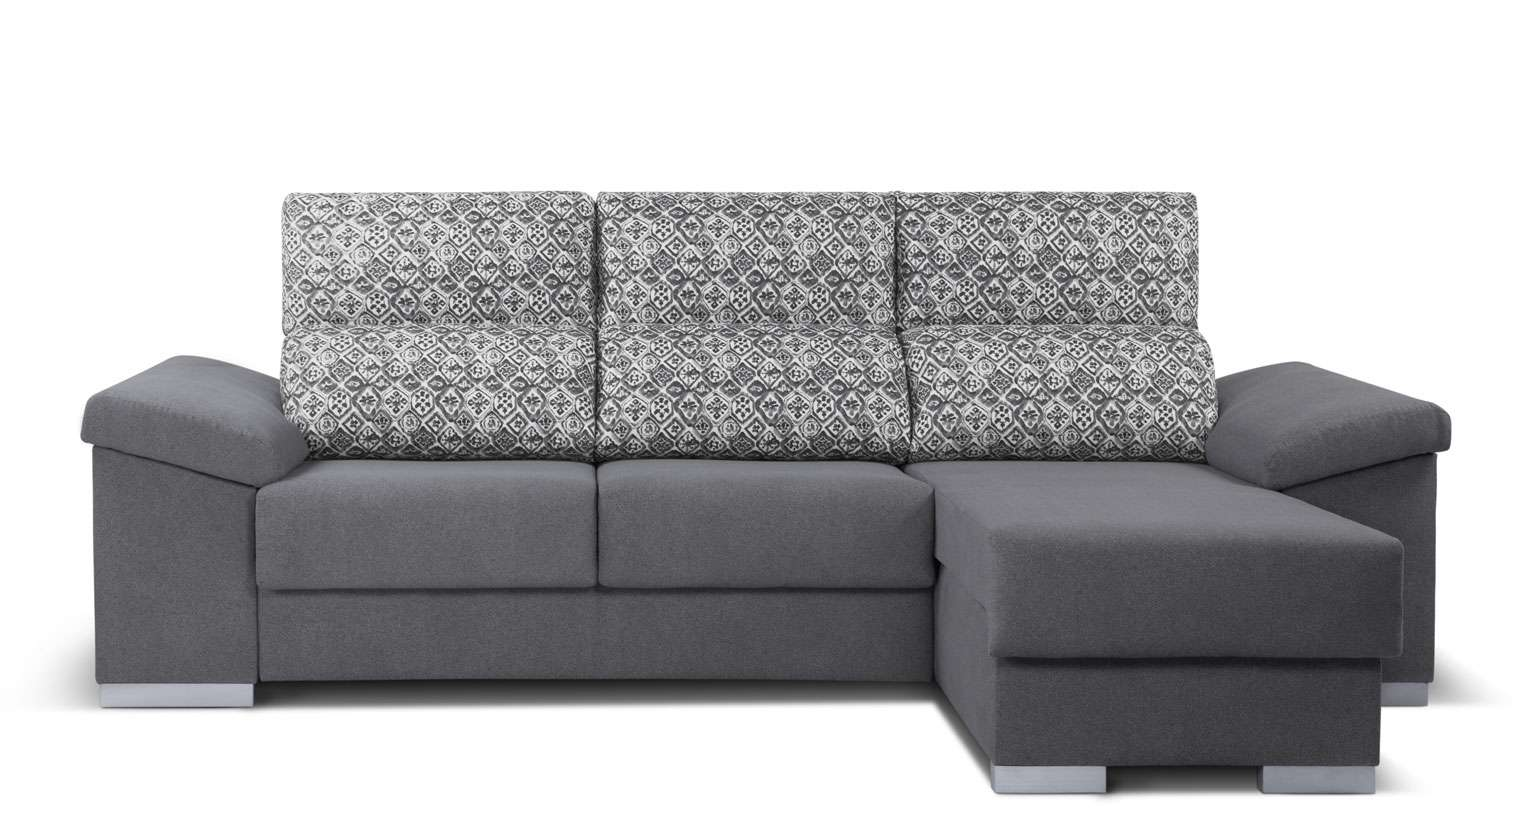 Comprar chaise longue tela belen chaiselongue 3 plazas for Chaise longue interiores